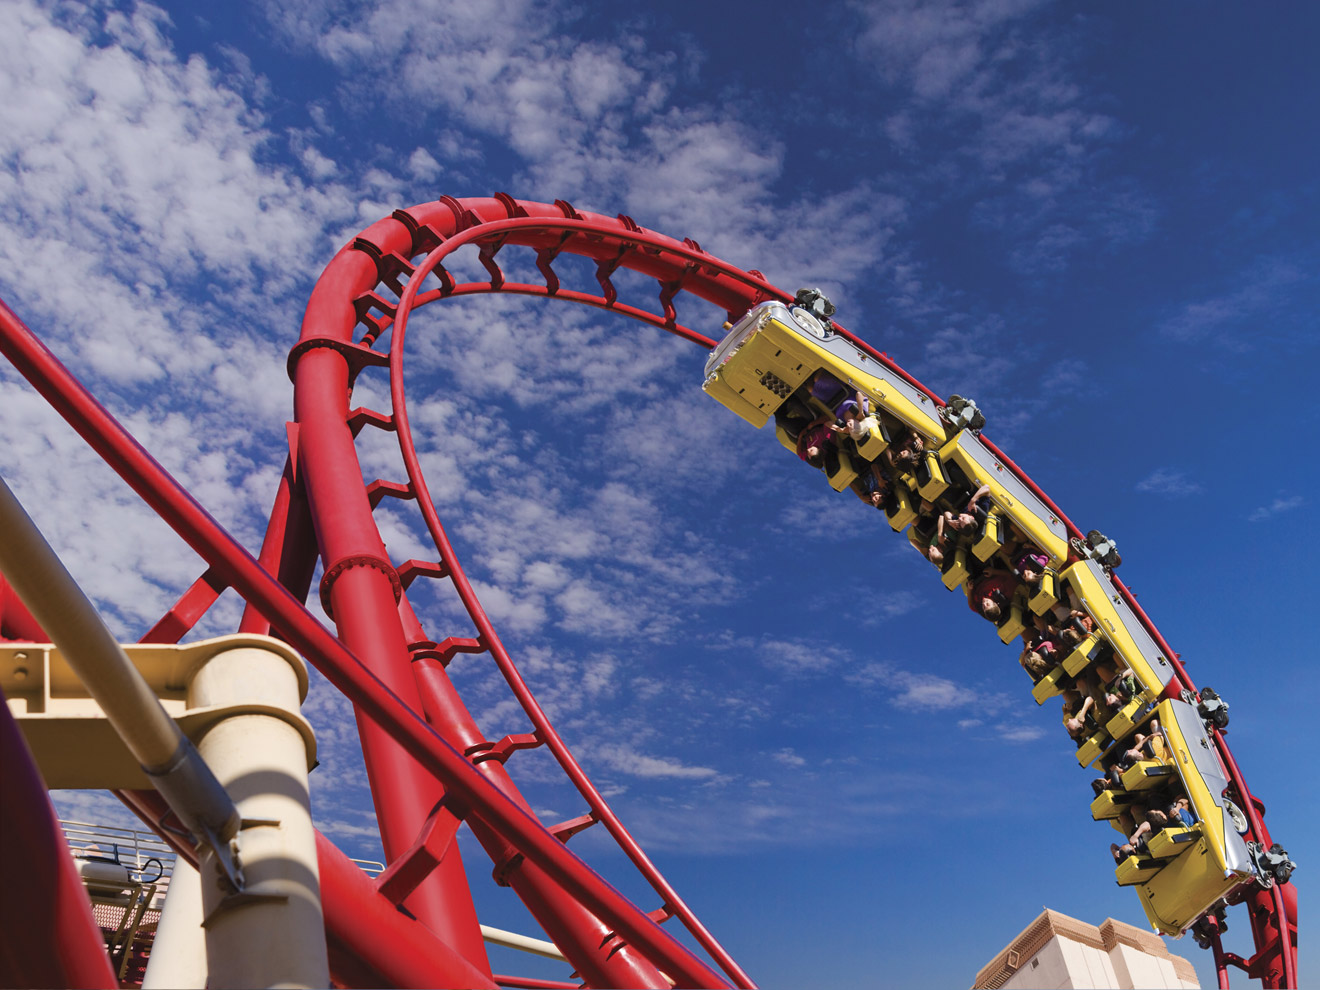 Large Coasters Things To Do With Kids In Las Vegas Family Vacation Hub